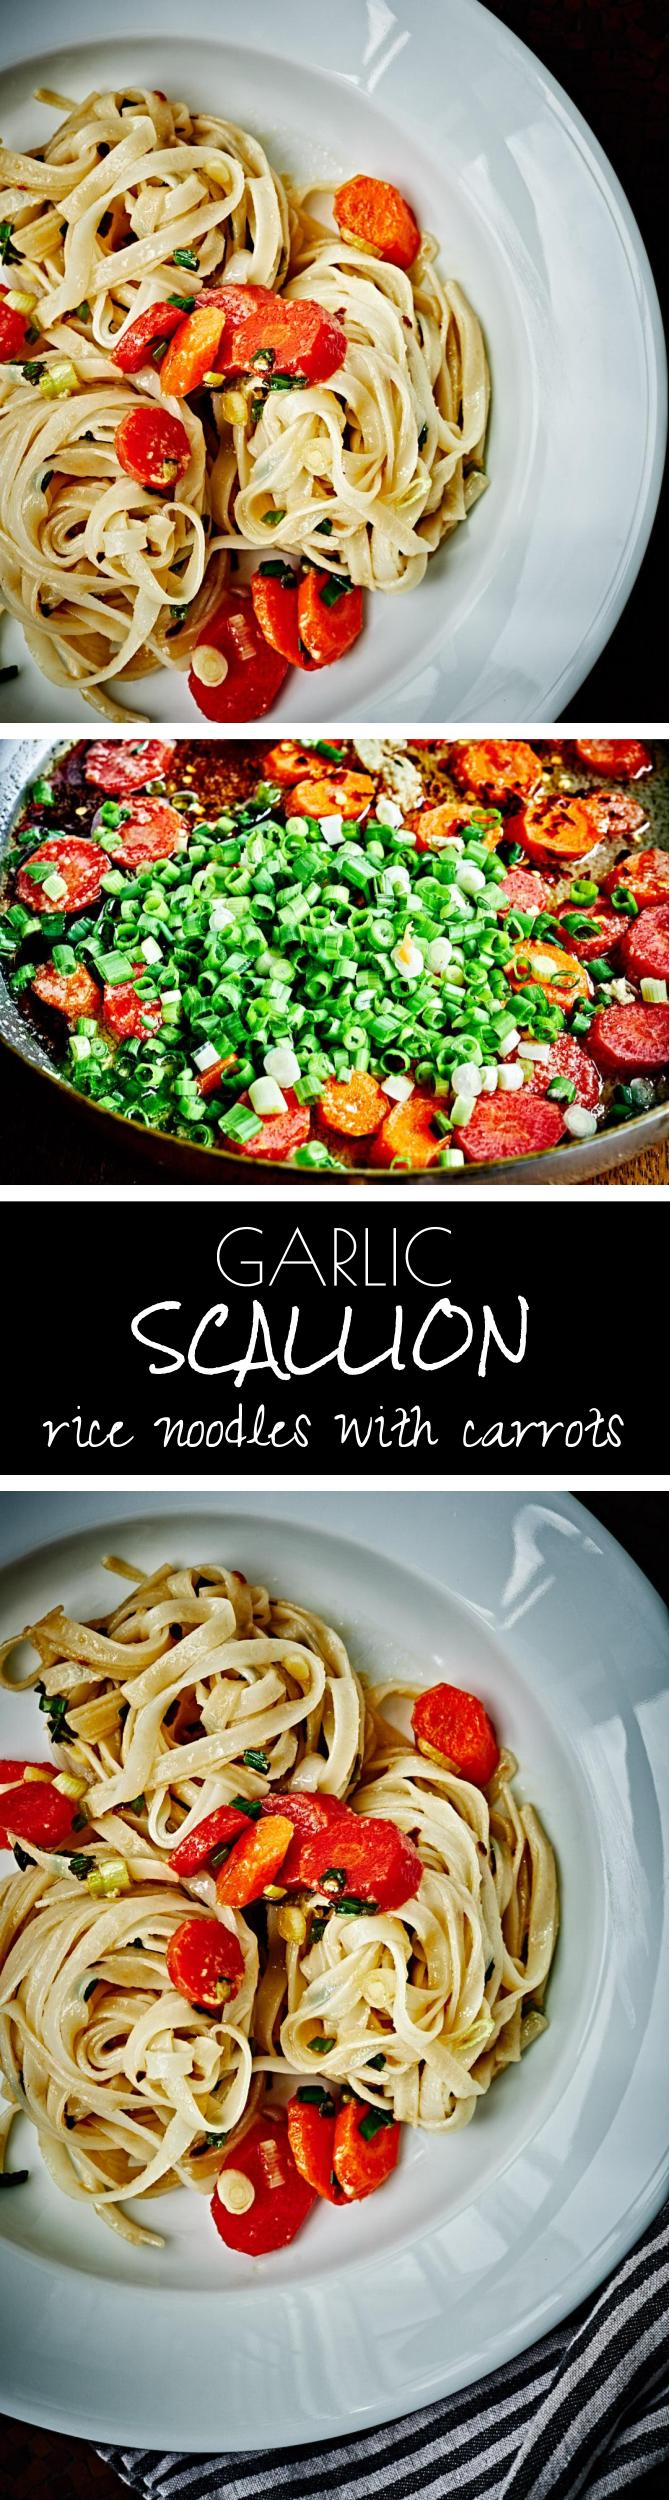 Garlic Scallion Rice Noodles with Carrots | Proportional Plate | Garlic scallion rice noodles with carrots is exactly what I want when I\'m craving take-out...and ready even faster than they can deliver!